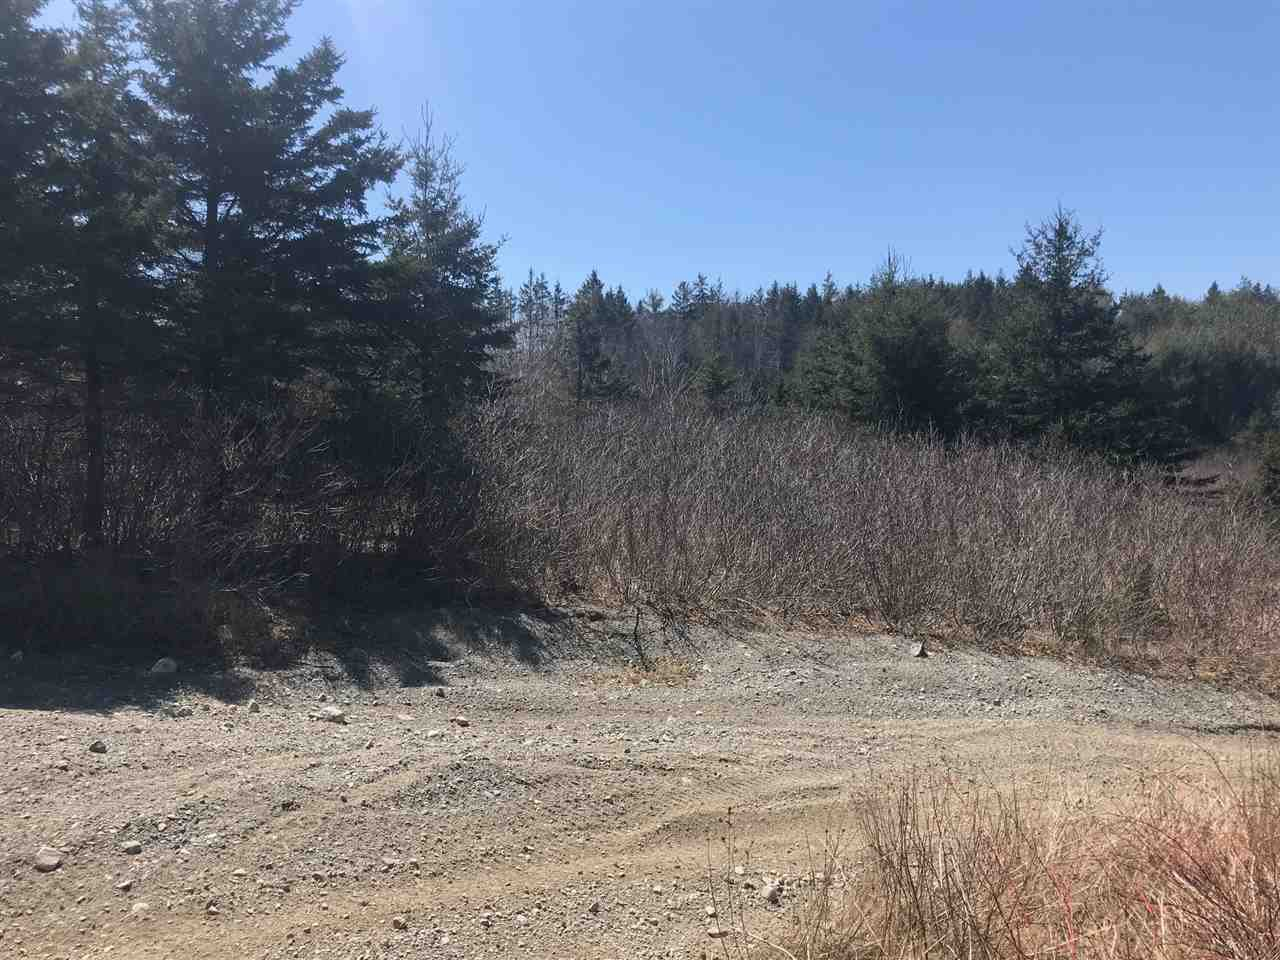 Photo 9: Photos: 11574 Highway 7 in Lake Charlotte: 35-Halifax County East Vacant Land for sale (Halifax-Dartmouth)  : MLS®# 201927372